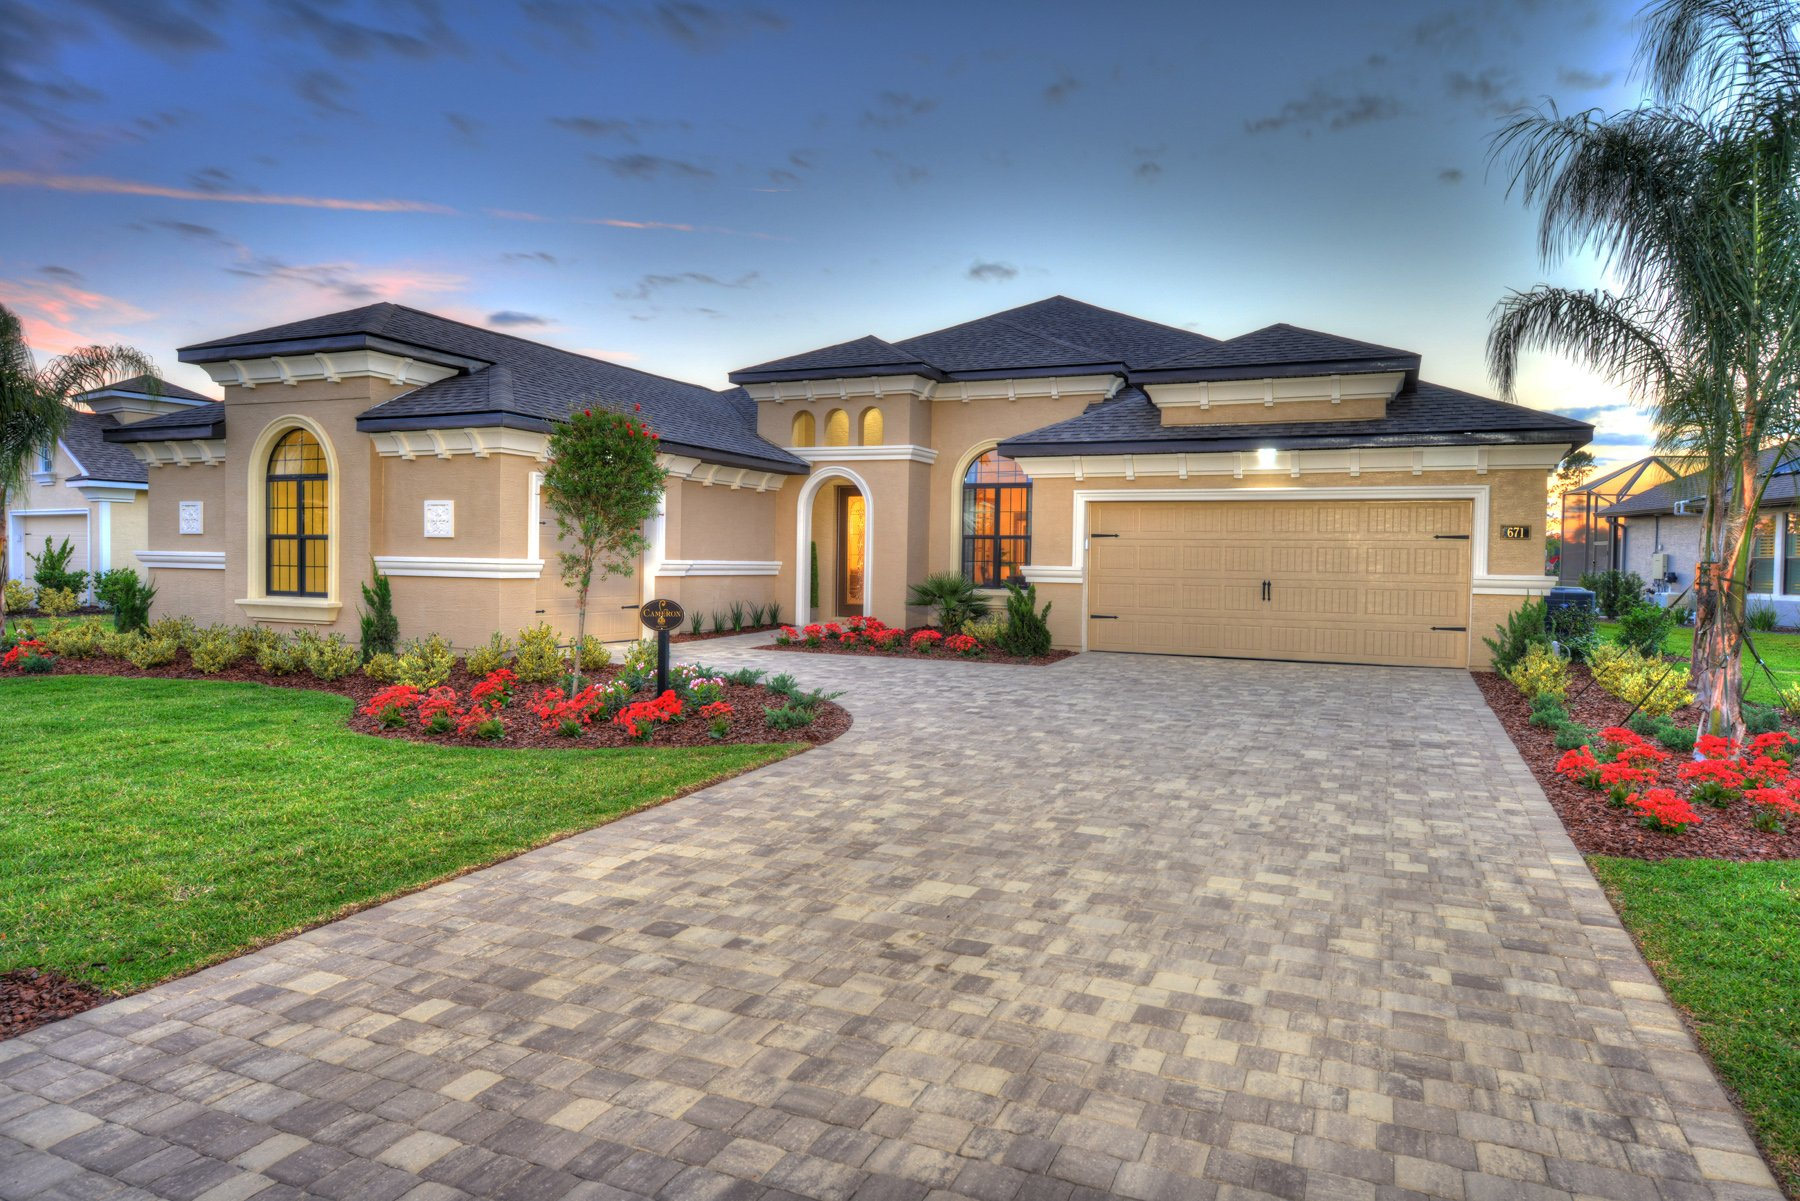 Real Estate Market Expected to Remain Strong Throughout Our Divisions - ICI Cameron PB 243 4 5 6 7 8 tonemapped